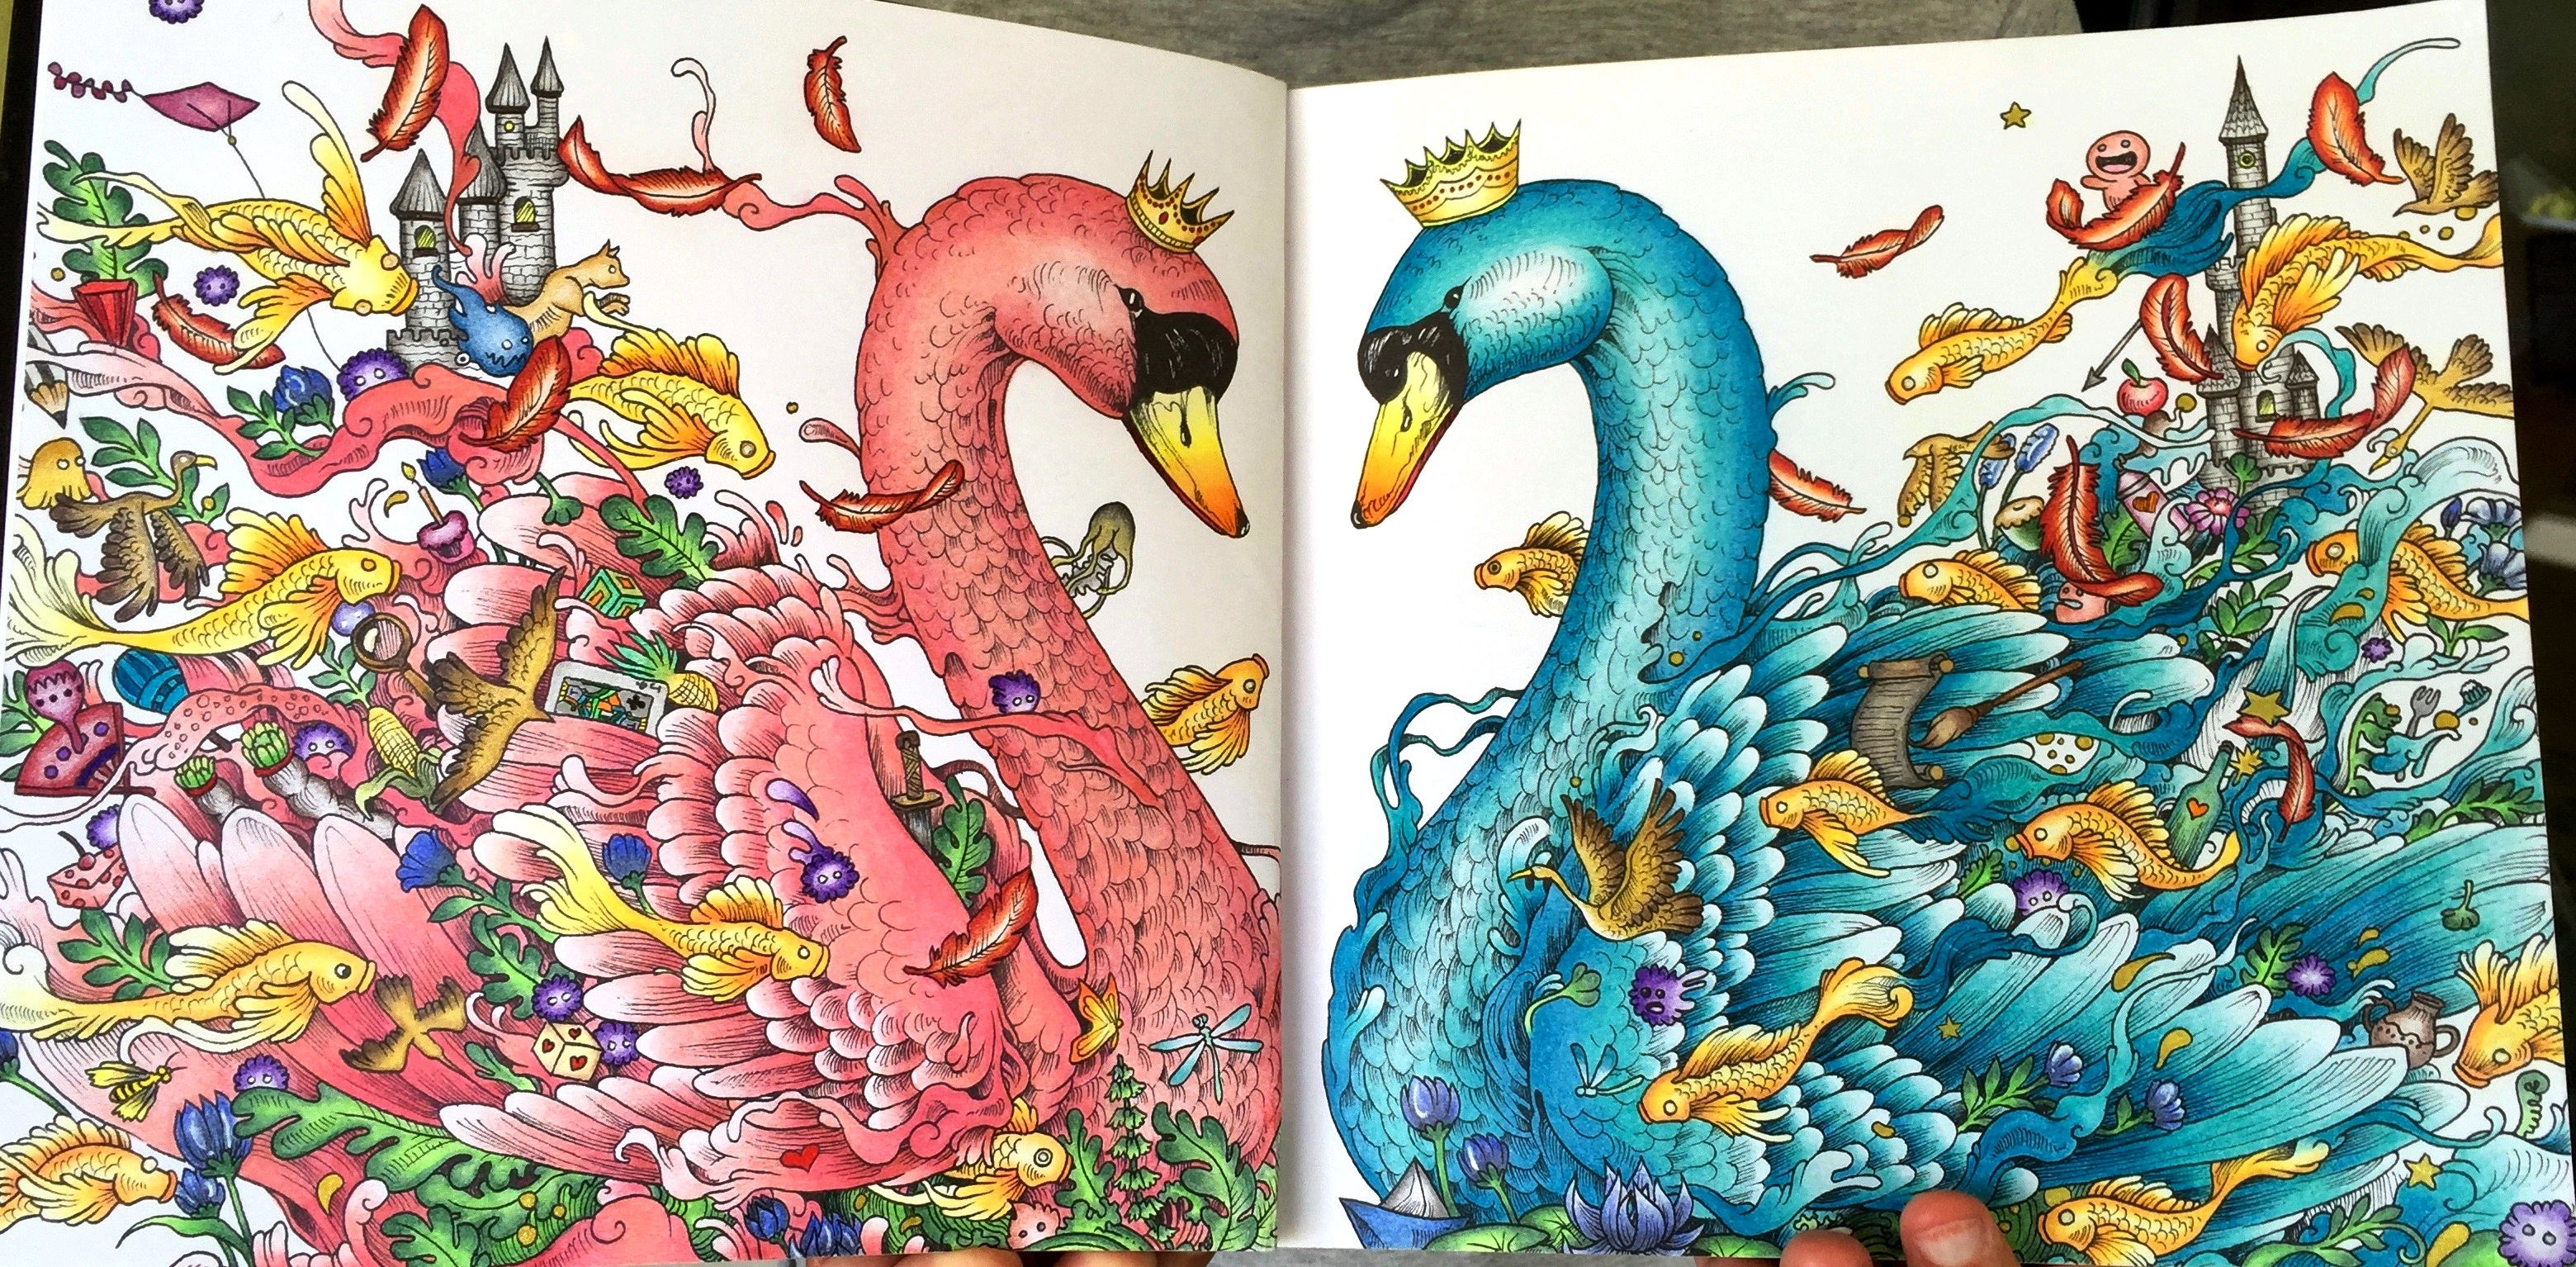 From Animorphia Colored With Faber Castell Polychomos Imagimorphia KerbyRosanes Polychromos Coloring BooksAdult